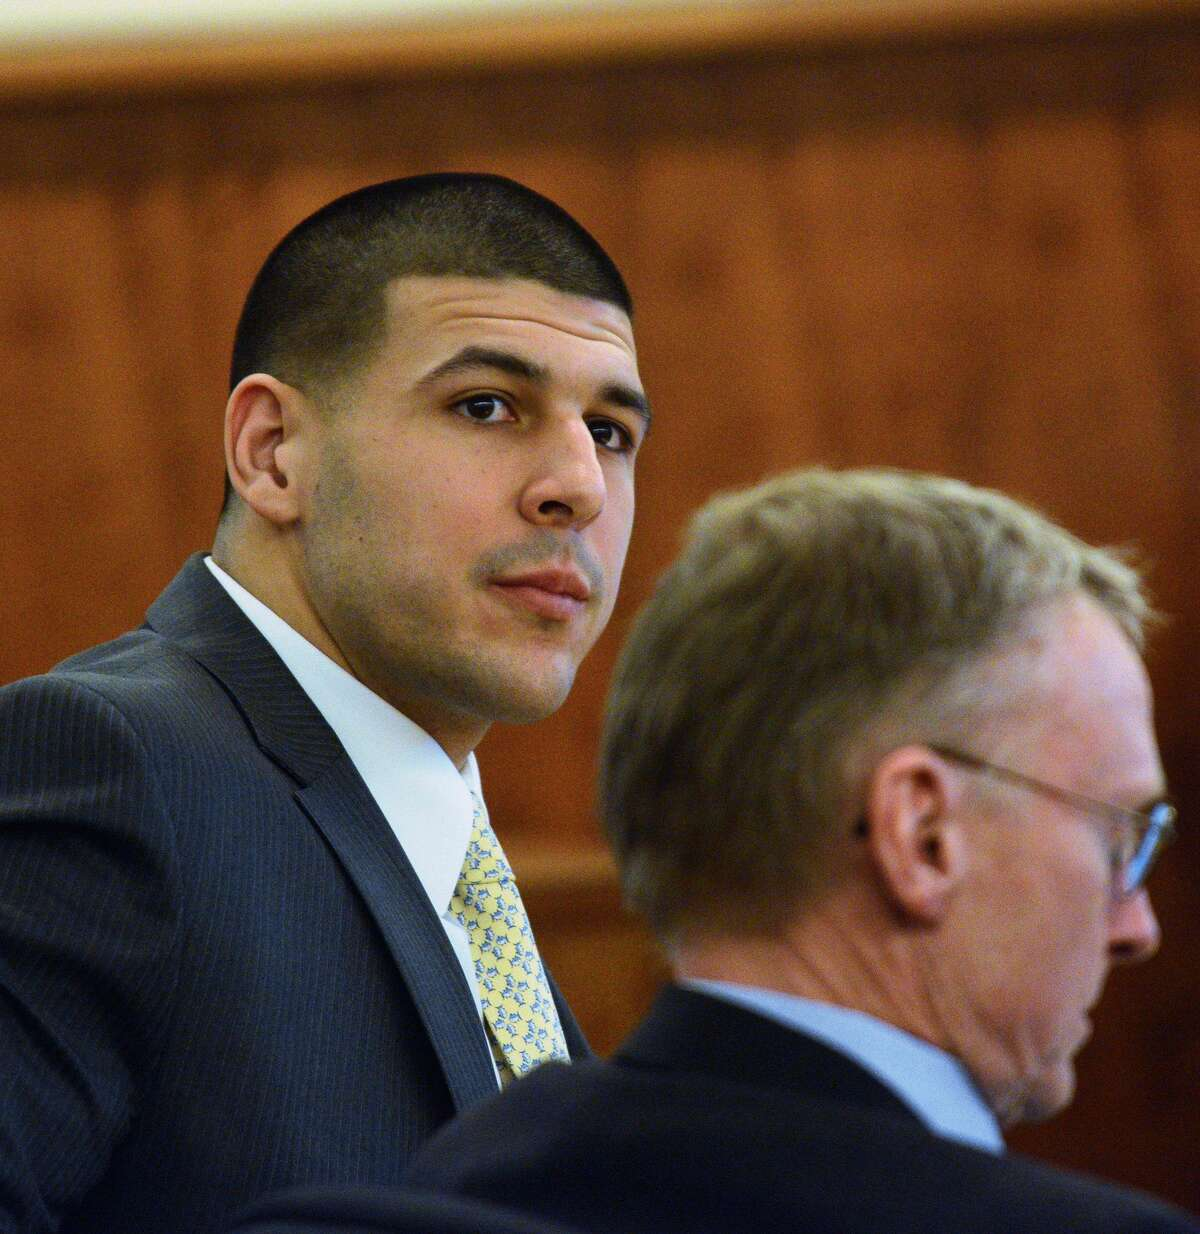 Former New England Patriots football player Aaron Hernandez, left, sits with his defense attorney Charles Rankin, right, during Hernandez's murder trial, Friday, March 6, 2015, in Fall River, Mass. Hernandez is charged with killing semiprofessional football player Odin Lloyd.